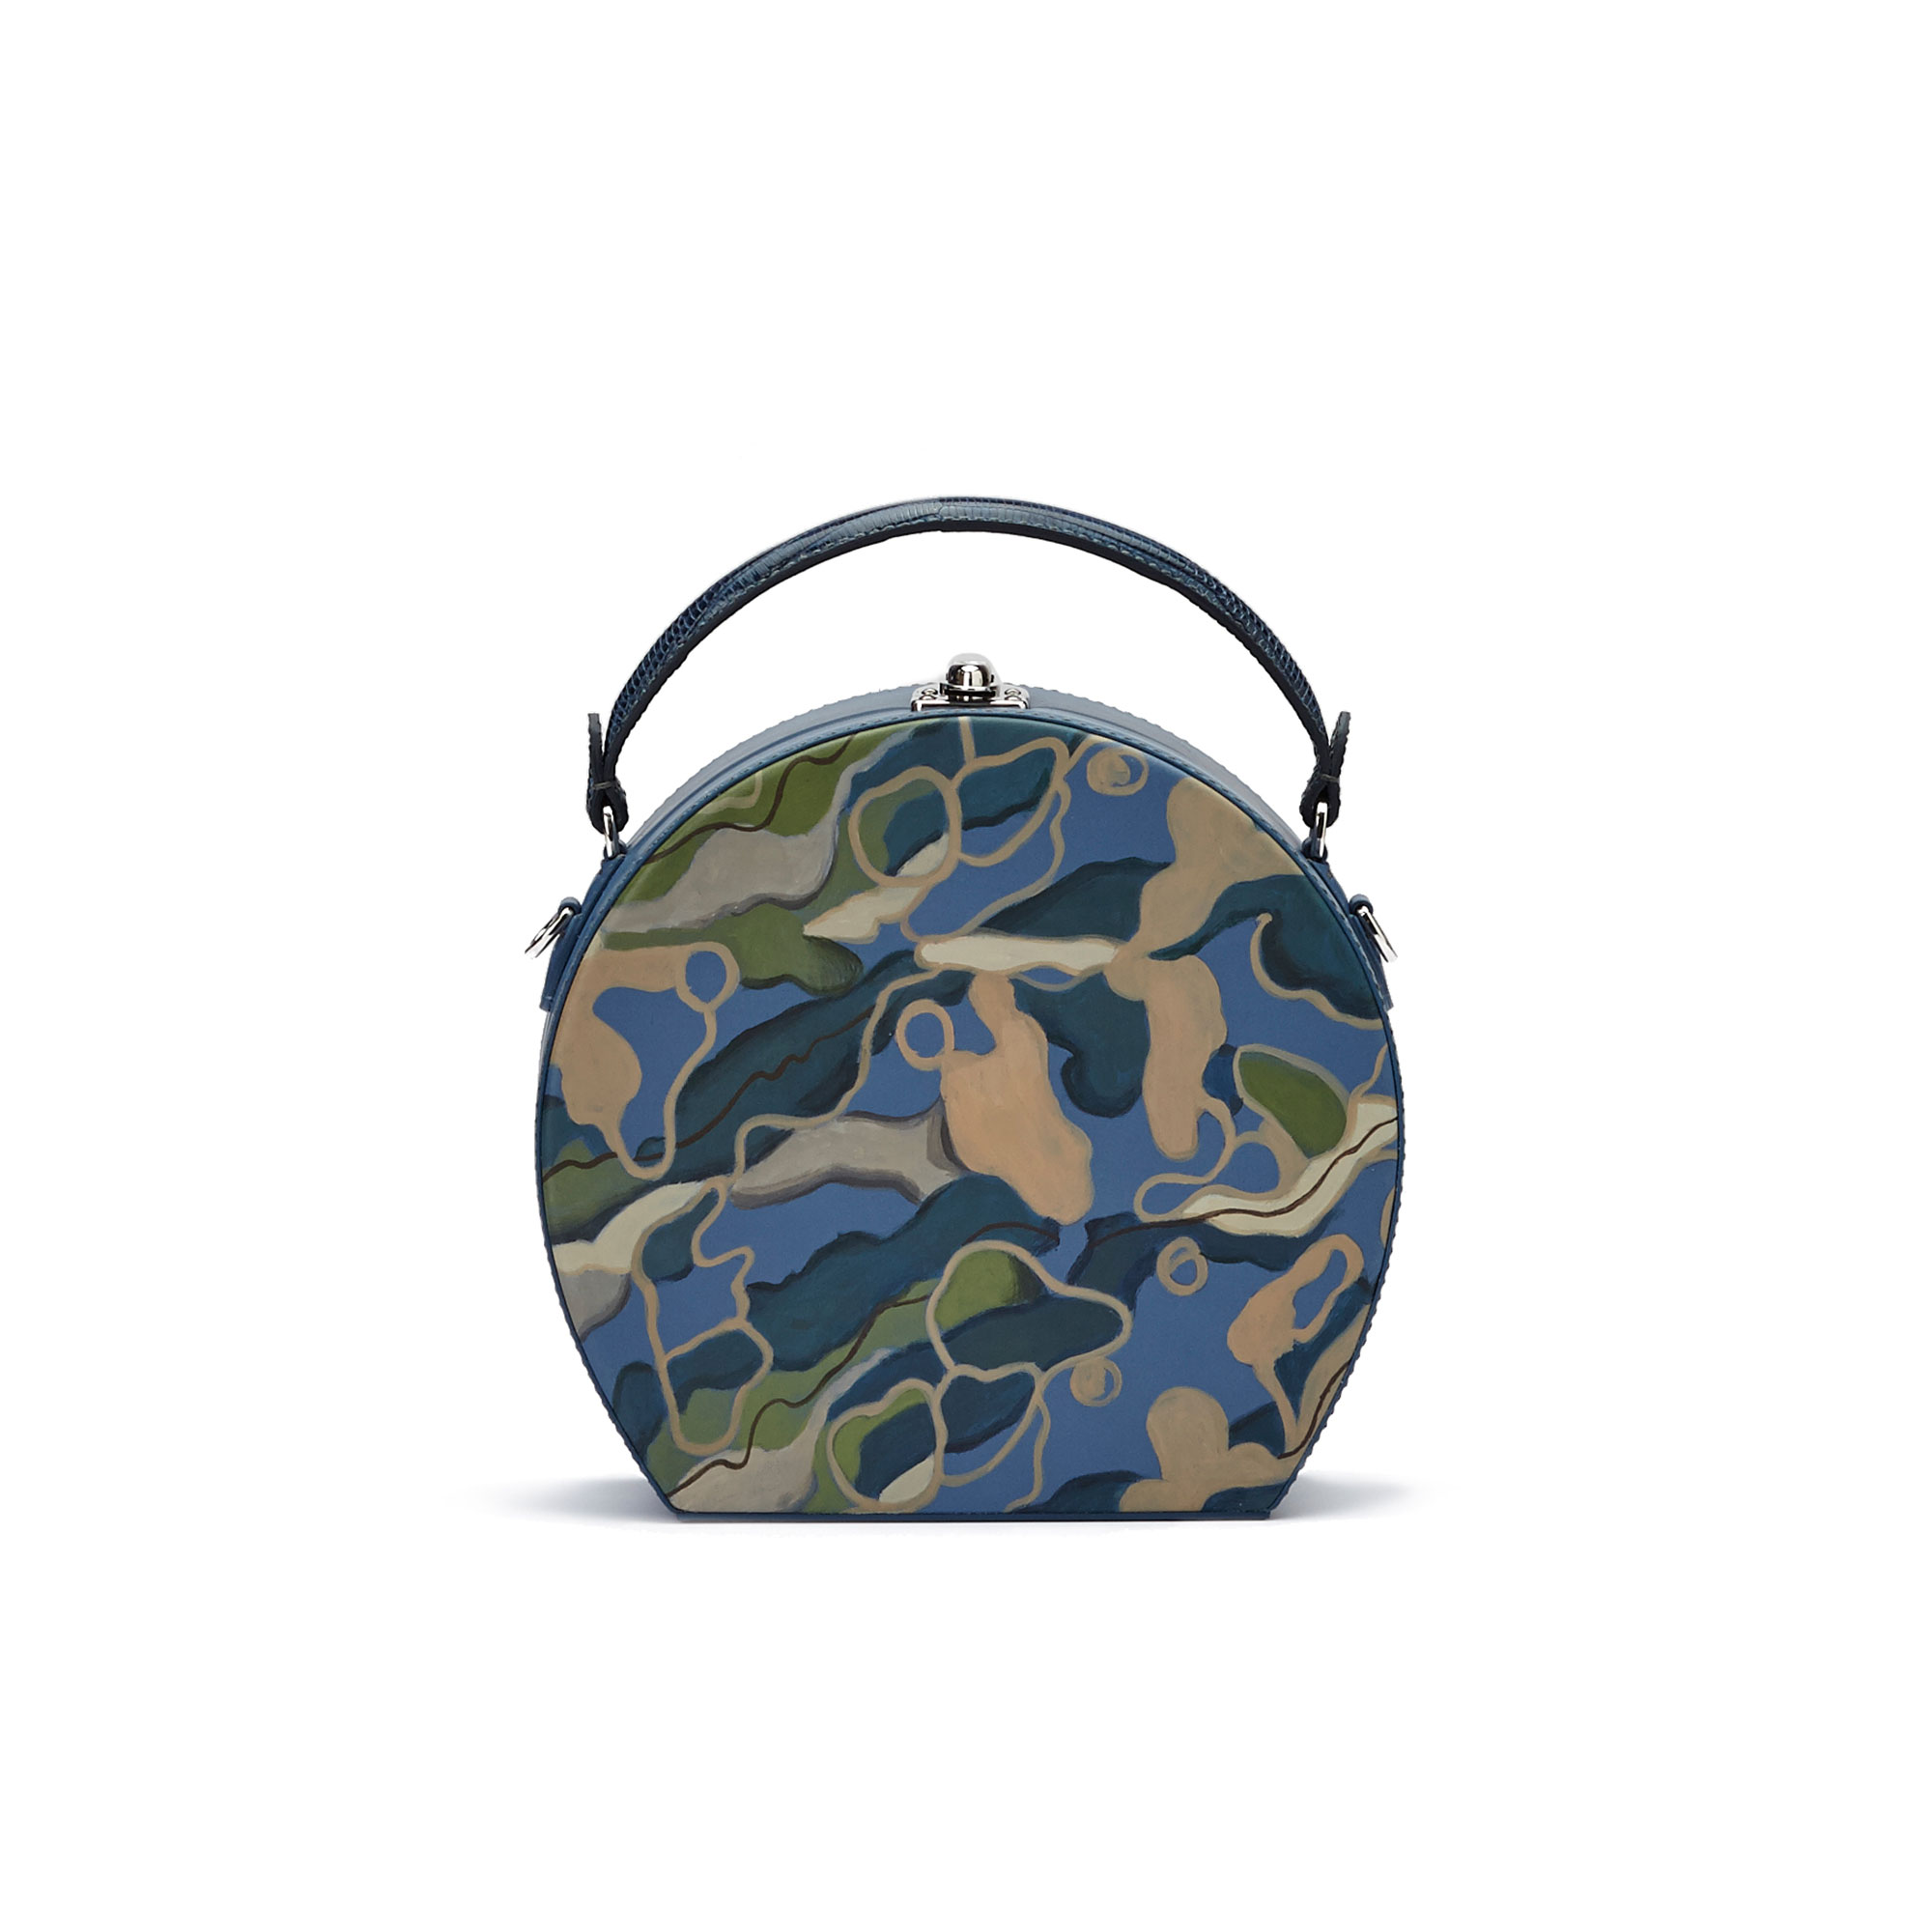 The hand-painted camouflage effect soft calf Regular Bertoncina bag by Bertoni 1949 01